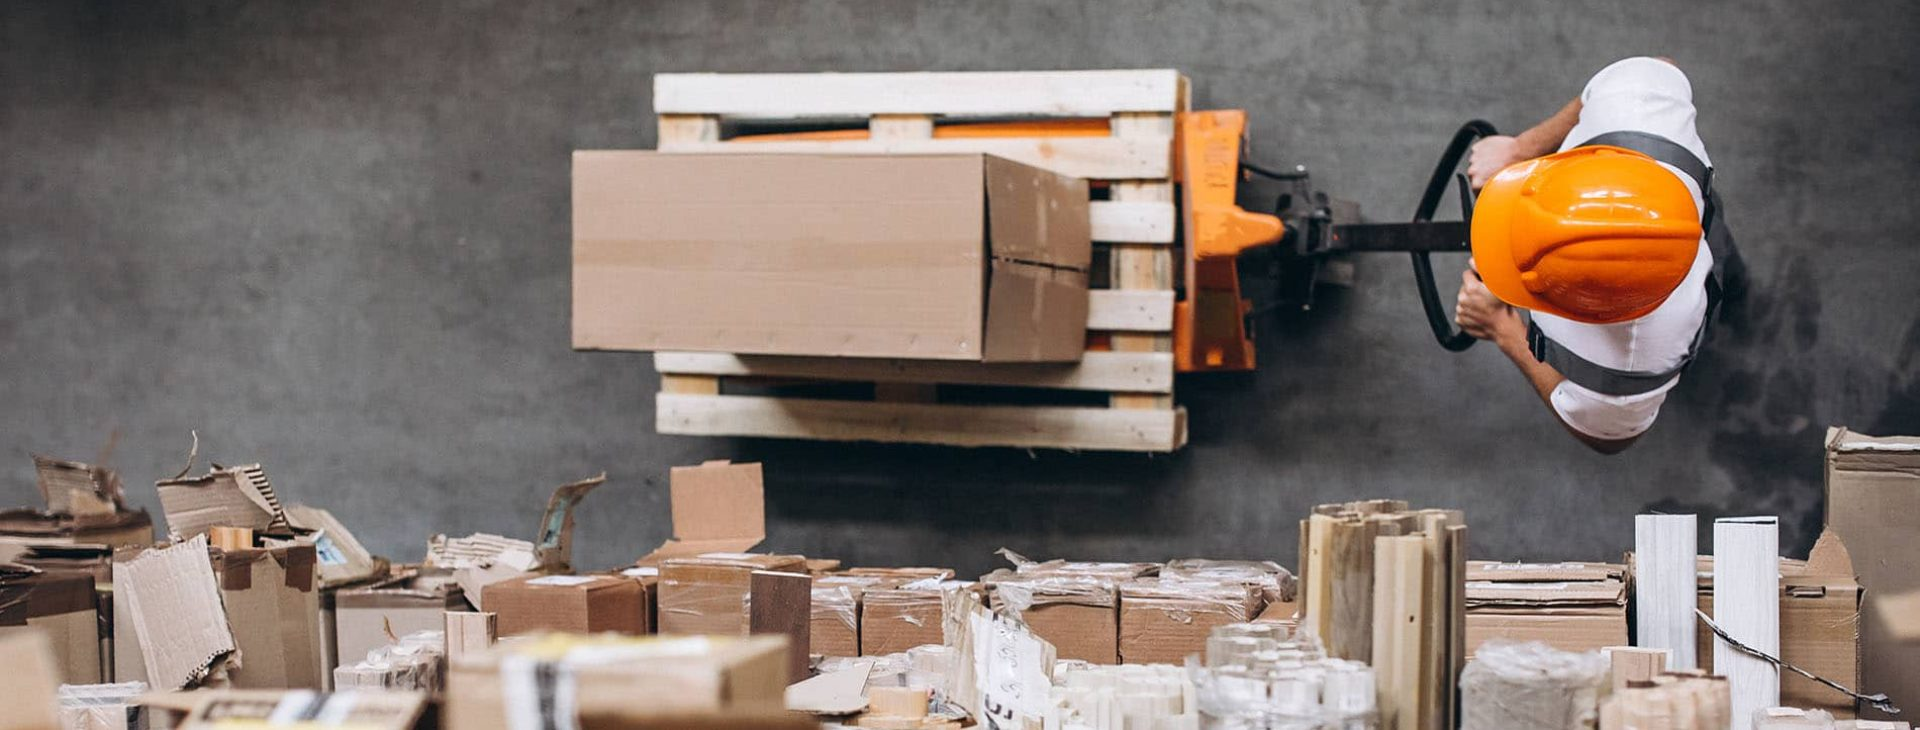 How can e-commerce business reduce logistics costs